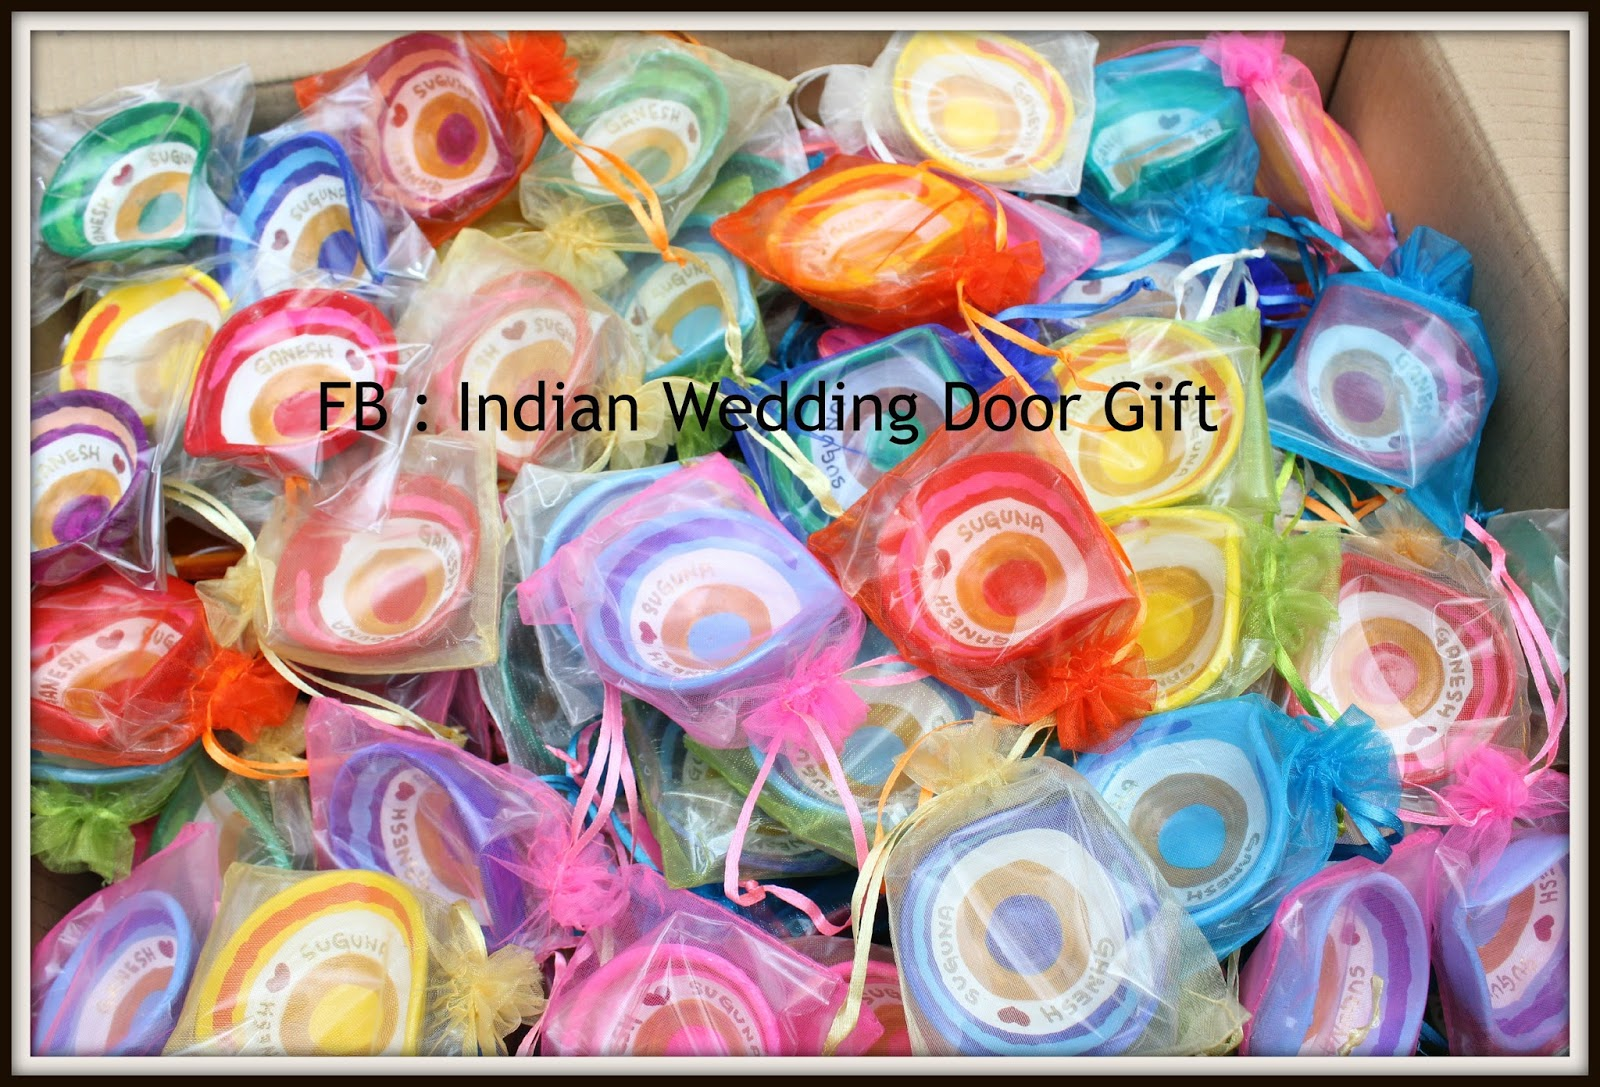 Door Gift For Wedding: Indian Wedding Door Gift: More Door Gift Photo's